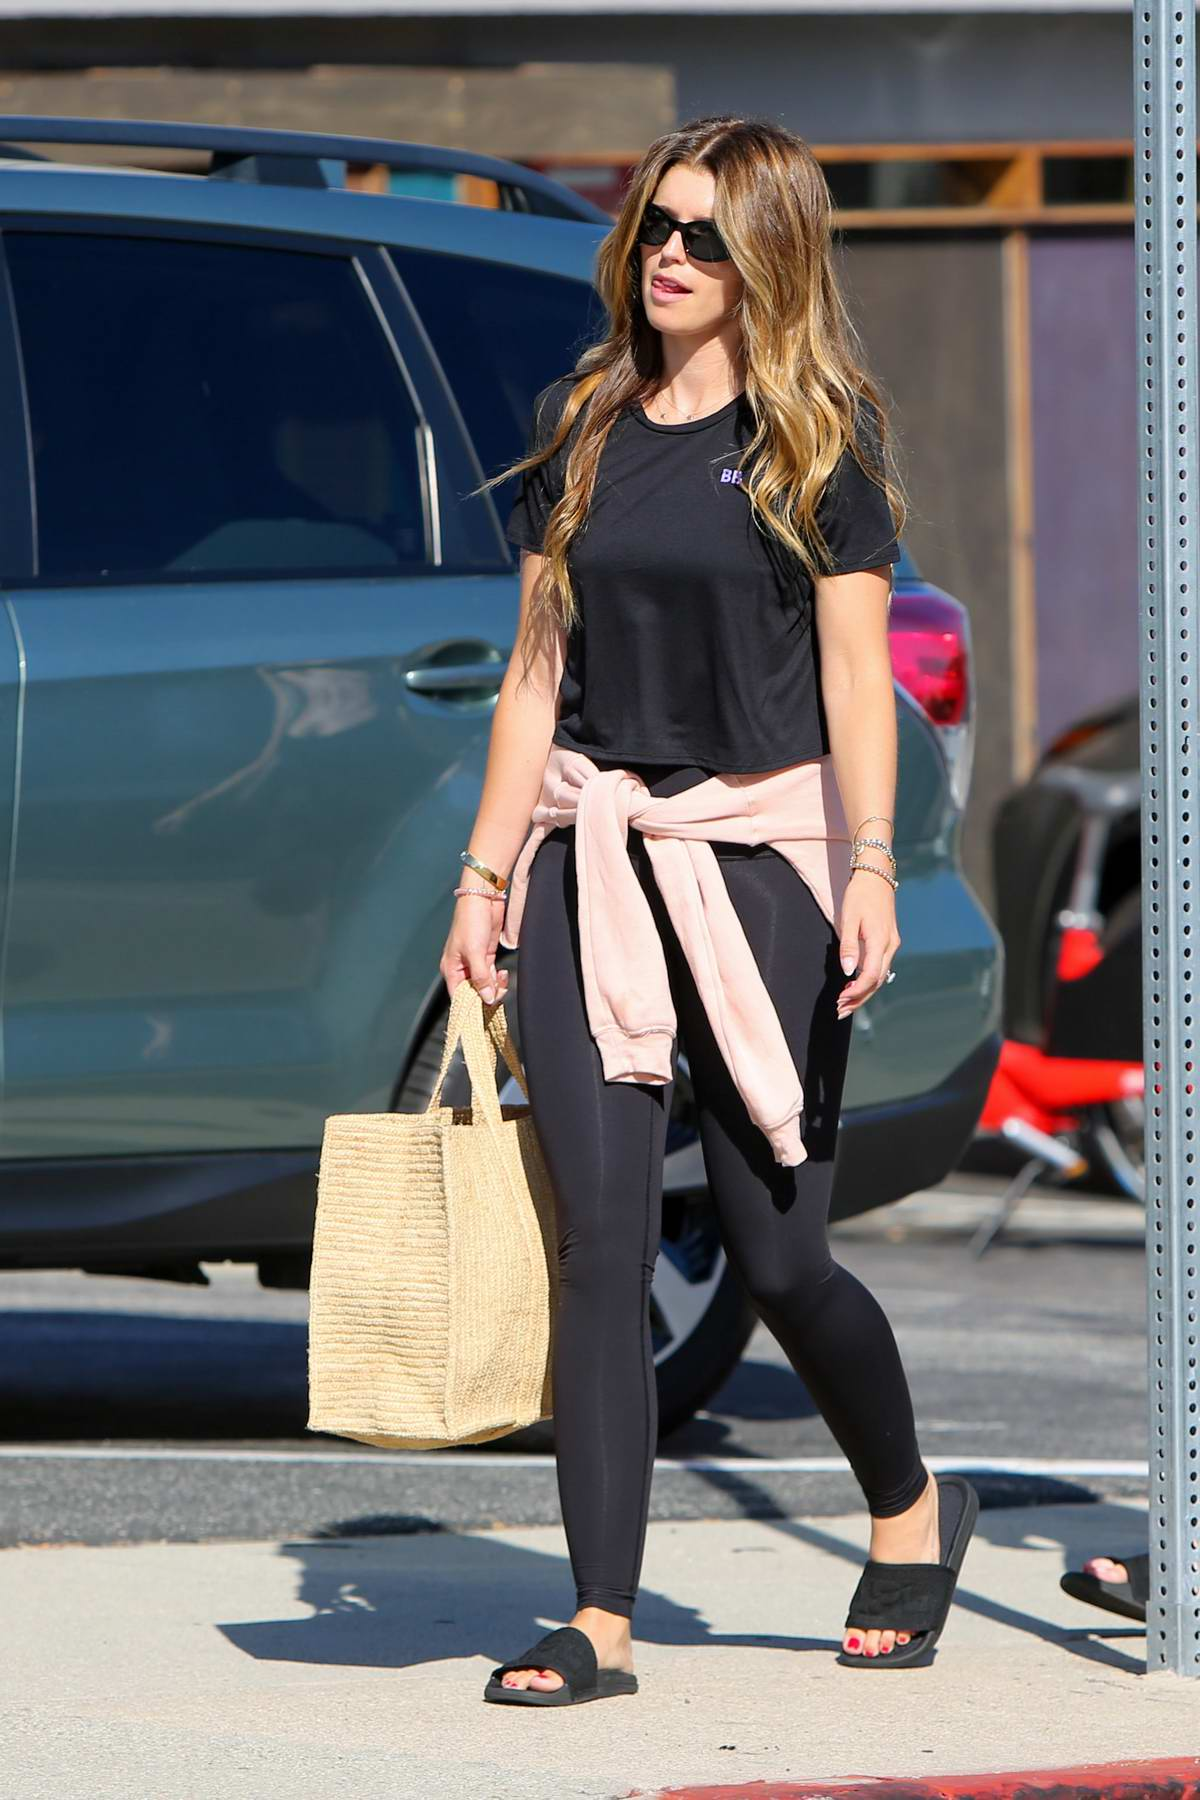 Katherine Schwarzenegger dons all-black while out running errands in Los Angeles